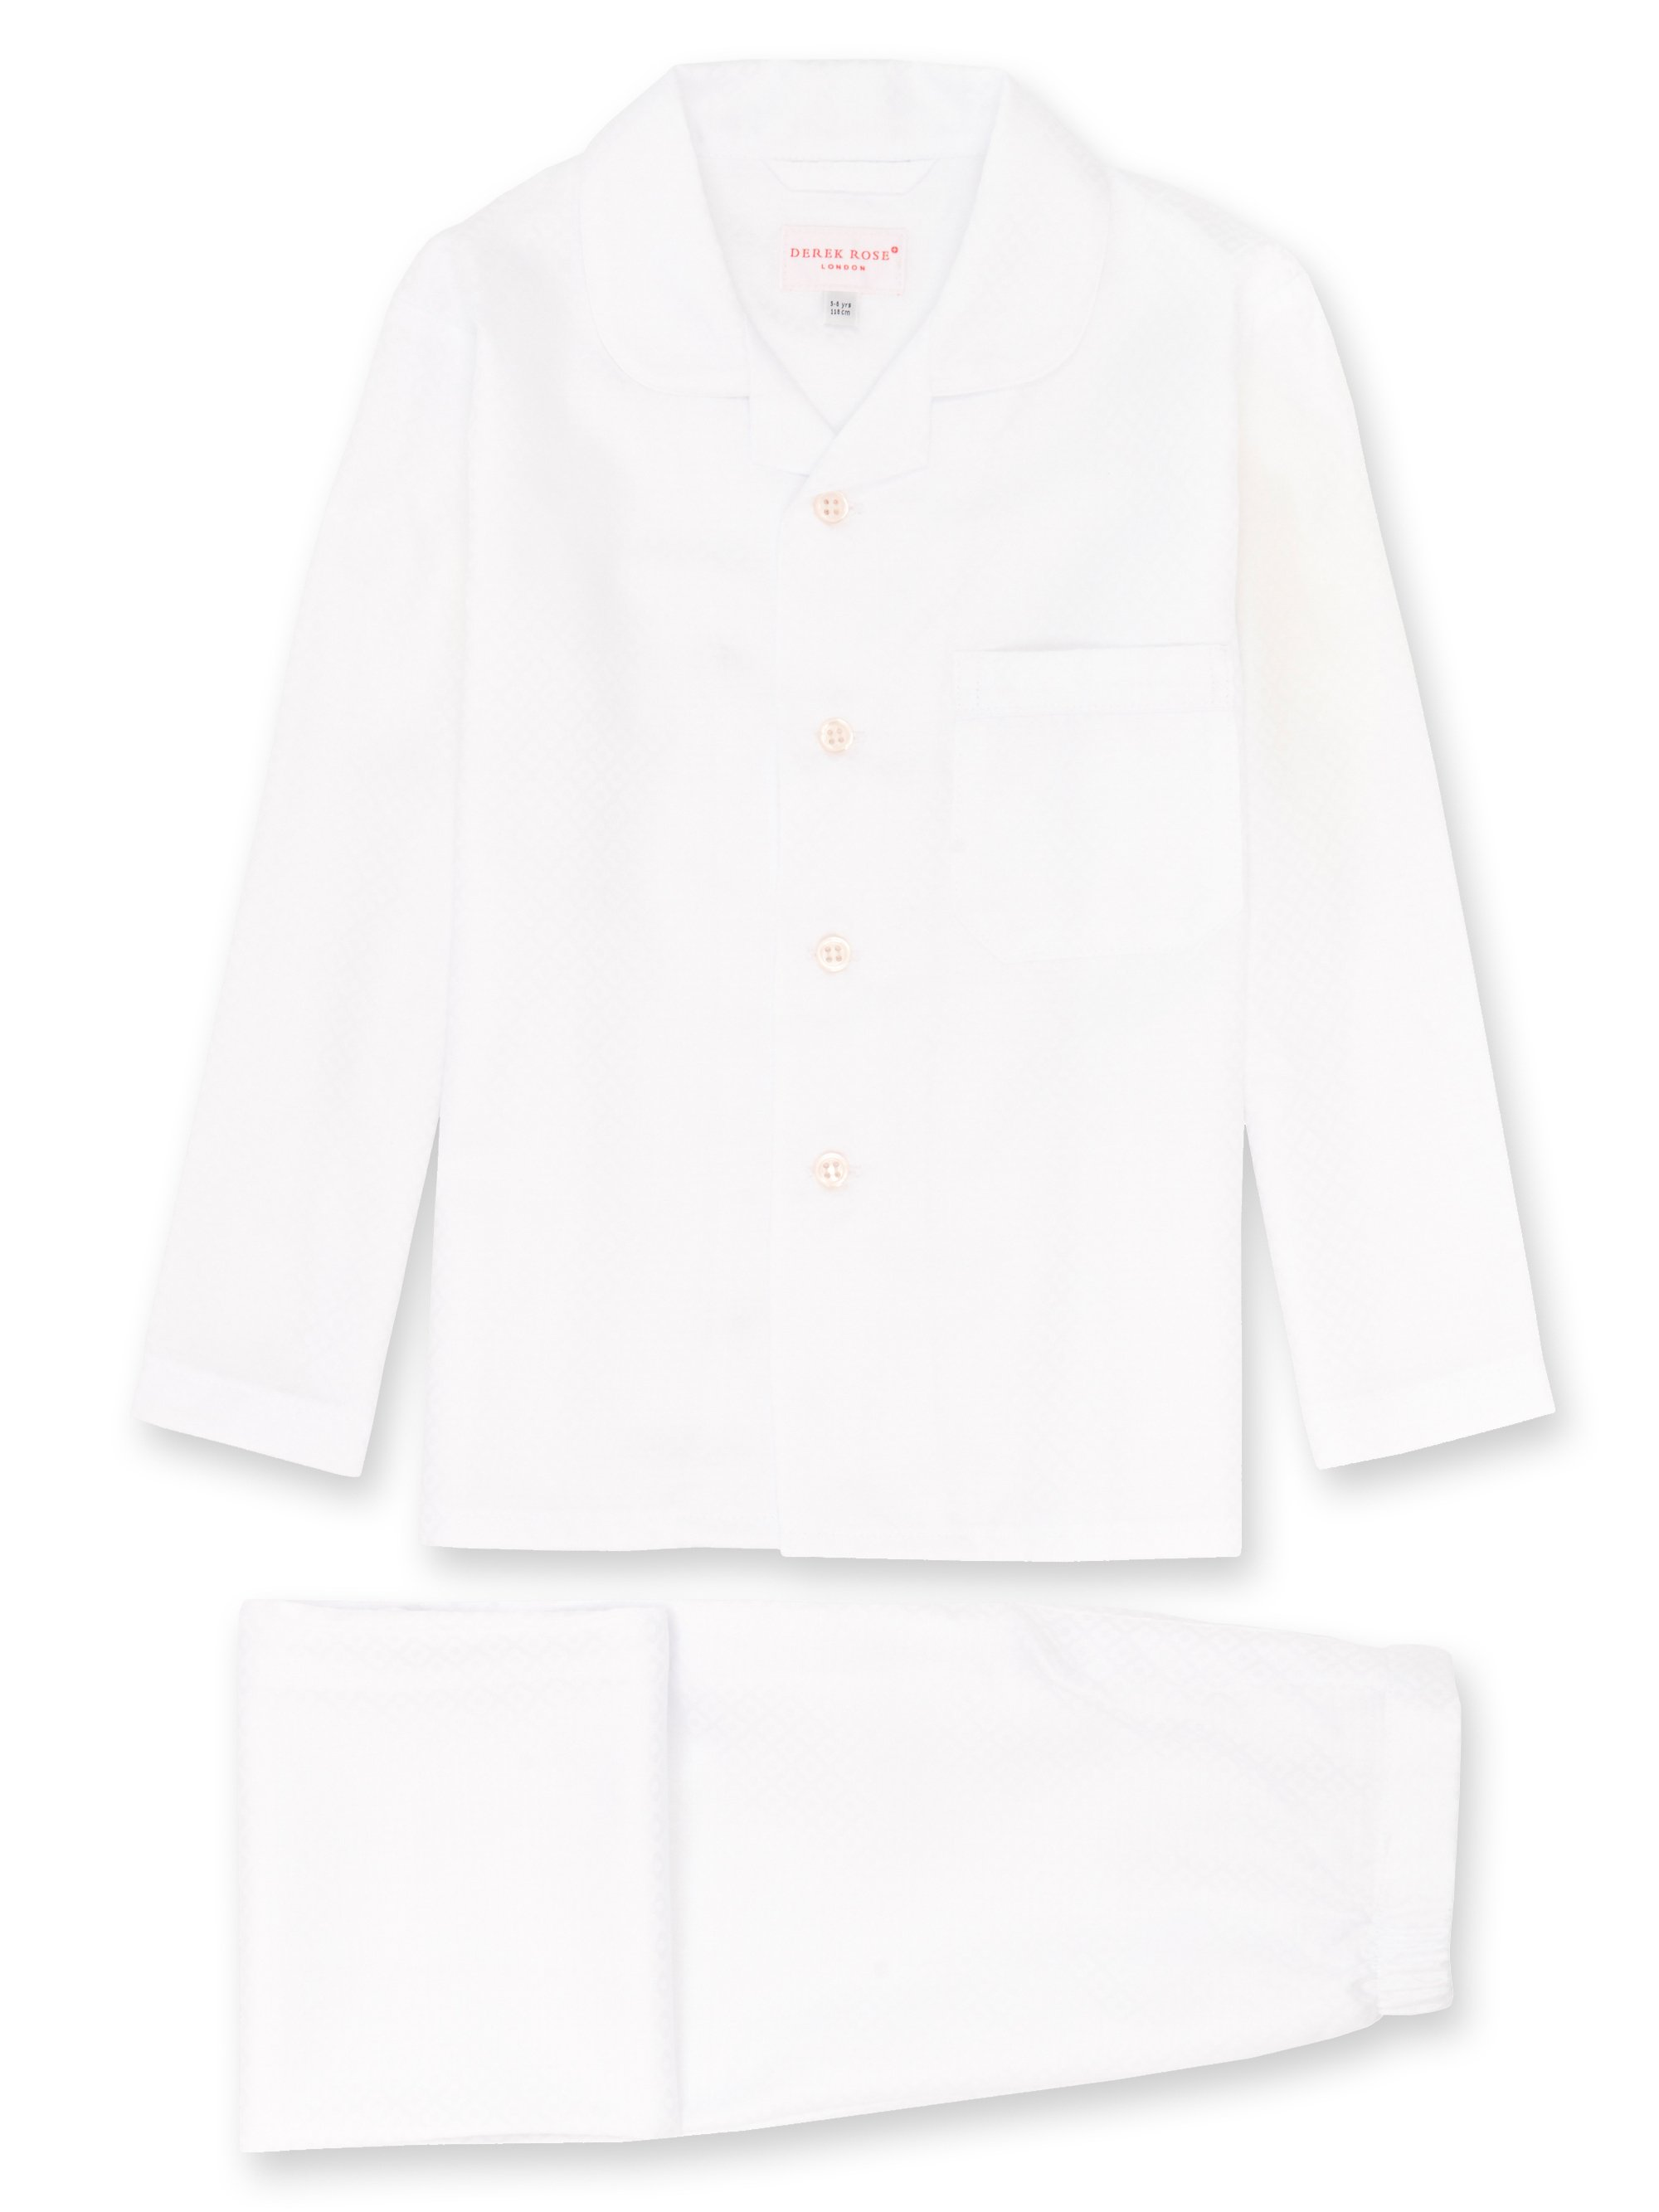 Girls' Pyjamas Kate 2 Cotton Jacquard White